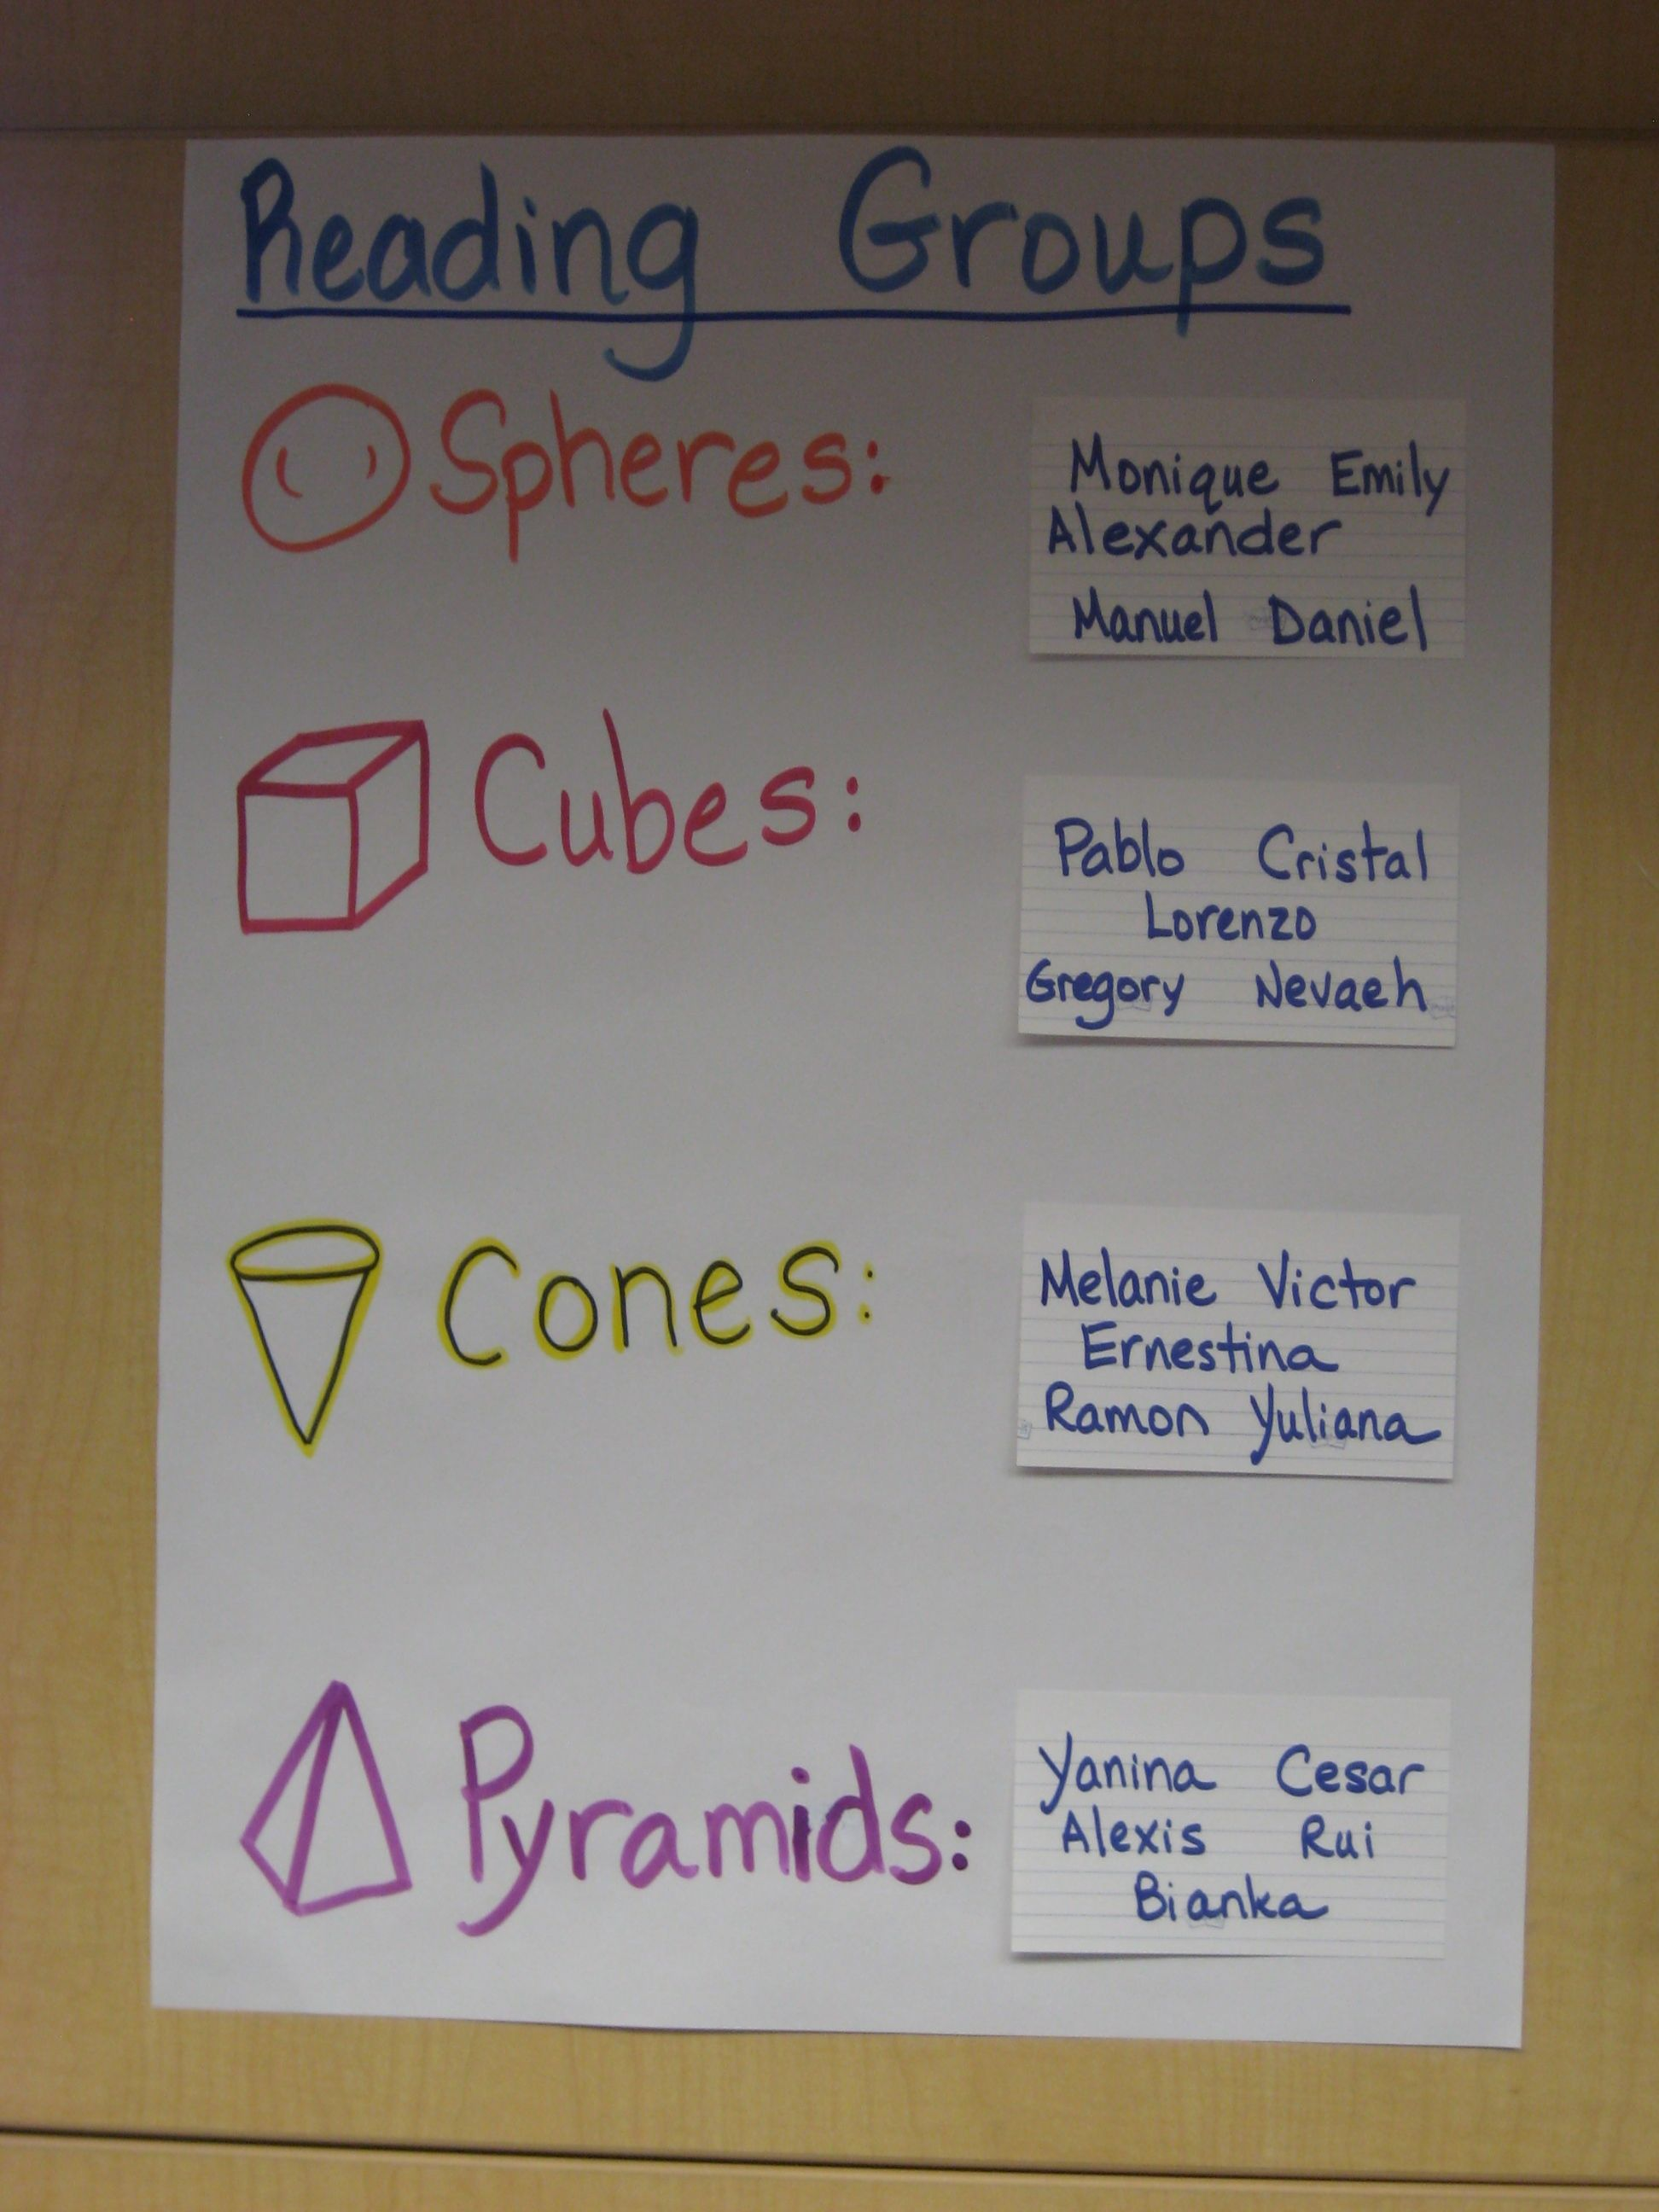 Reading group names are based on math vocabulary @Mary